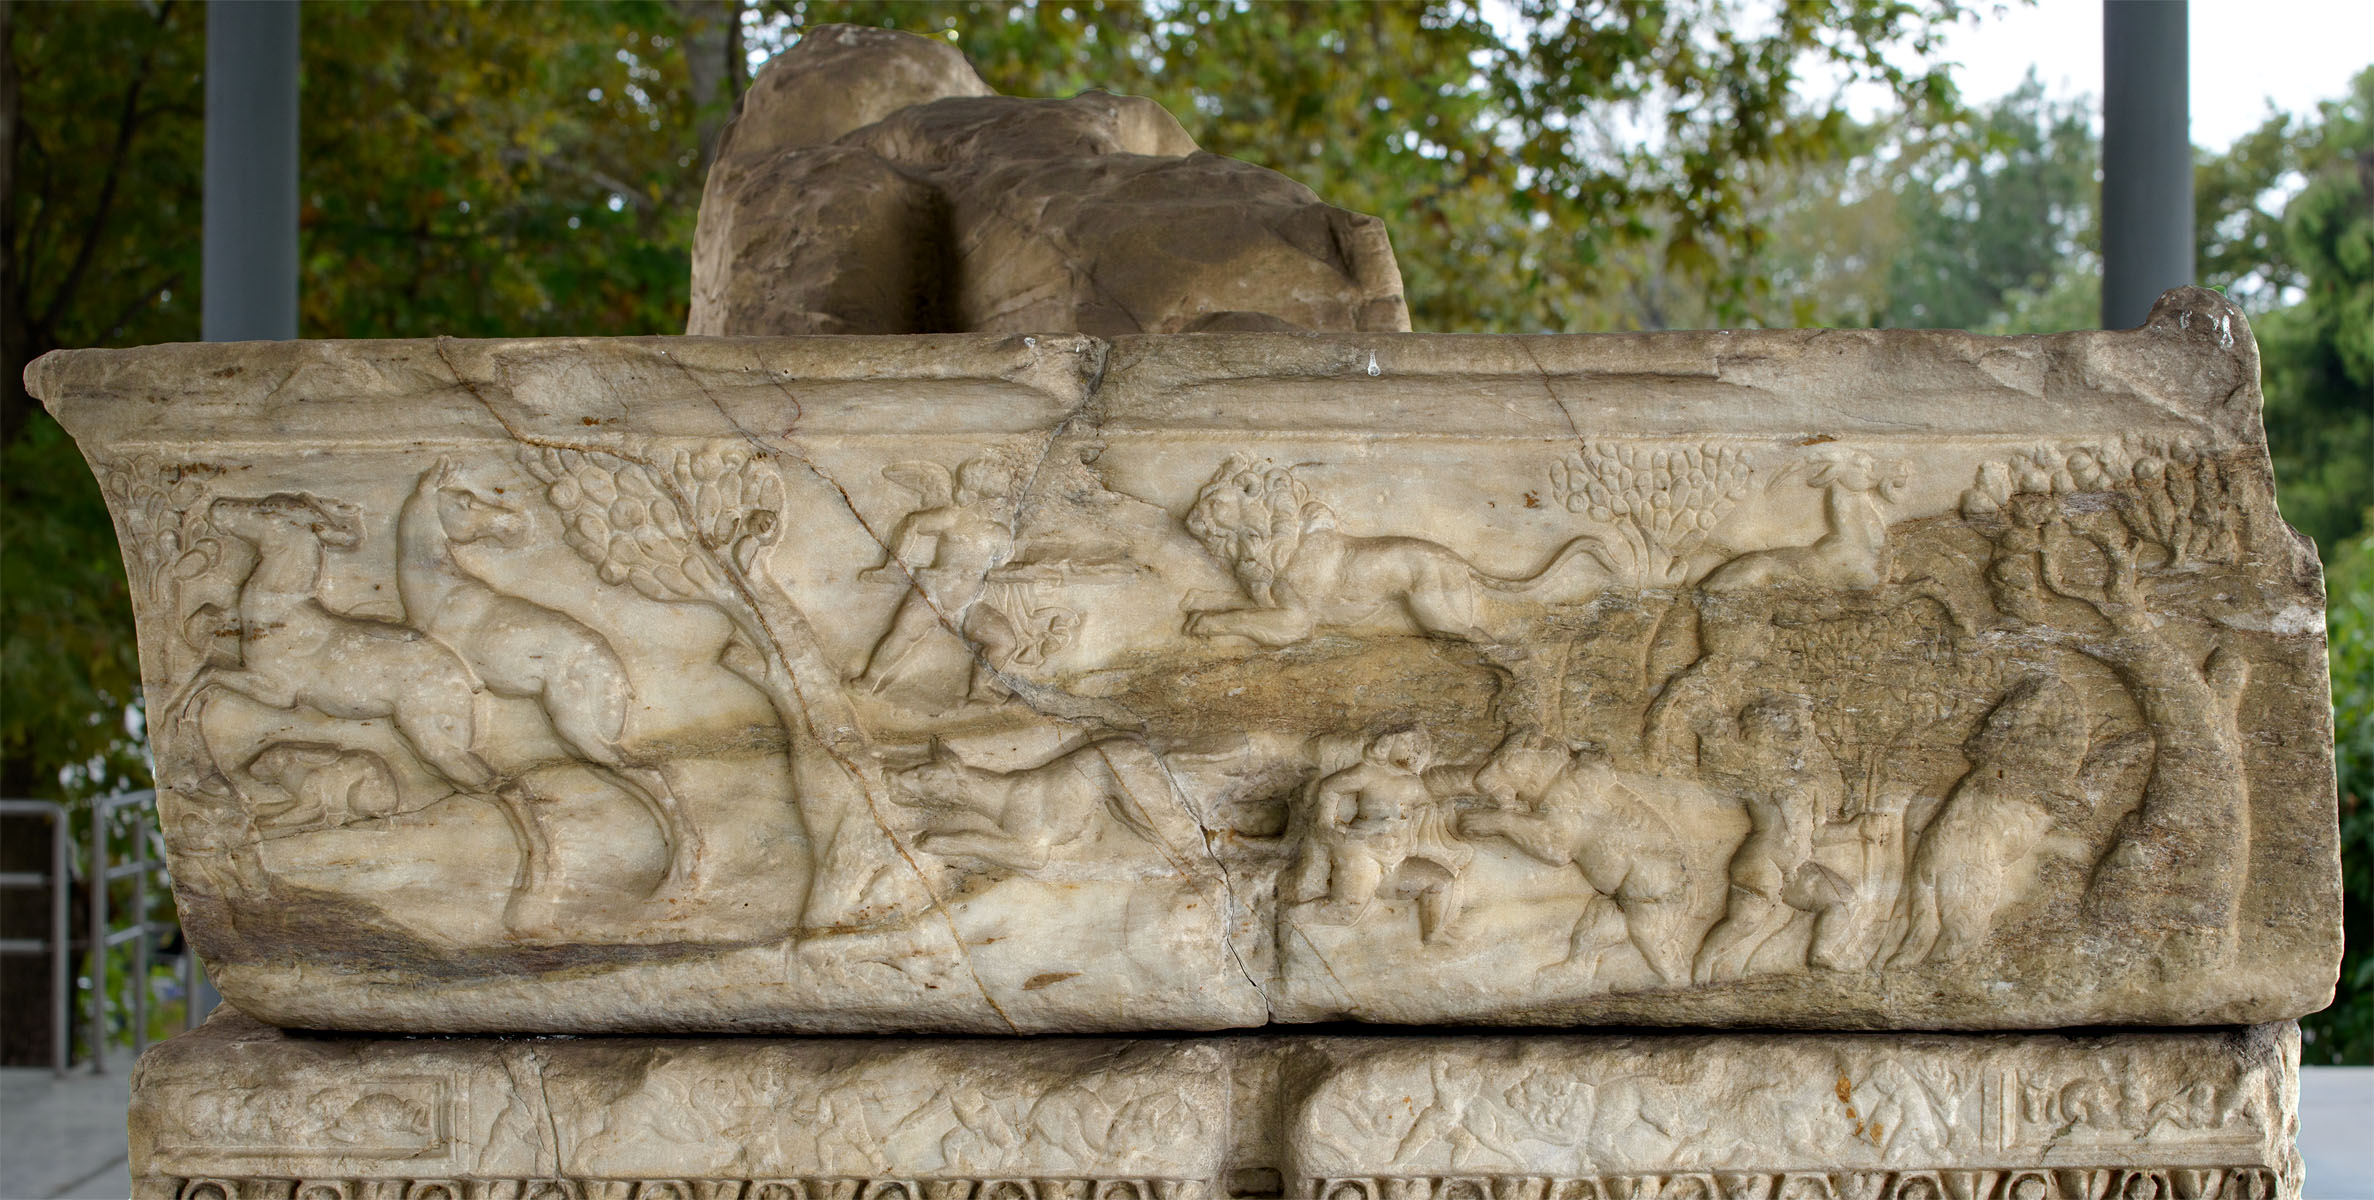 Attic sarcophagus with scenes of battles between the Greeks and the Amazons (the left short side of the lid). Marble. 220—230 CE. Thessaloniki, Archaeological Museum